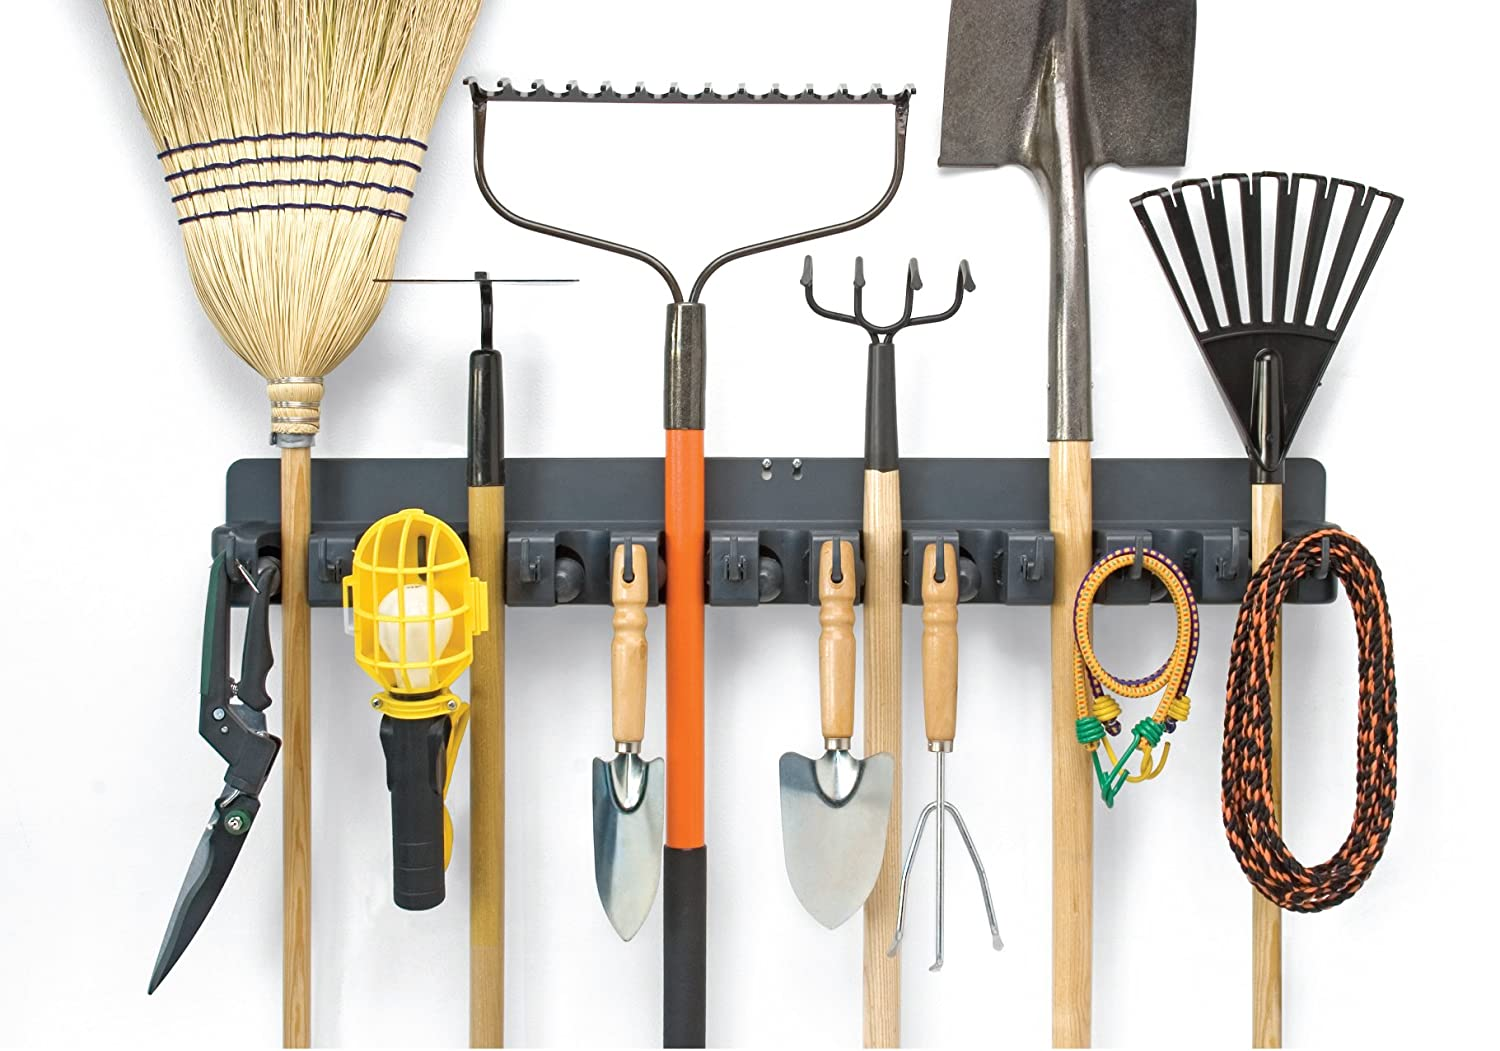 photos garden tools up wall close cotswolds photo tool hotel barnsley hanger stock on hanging of house